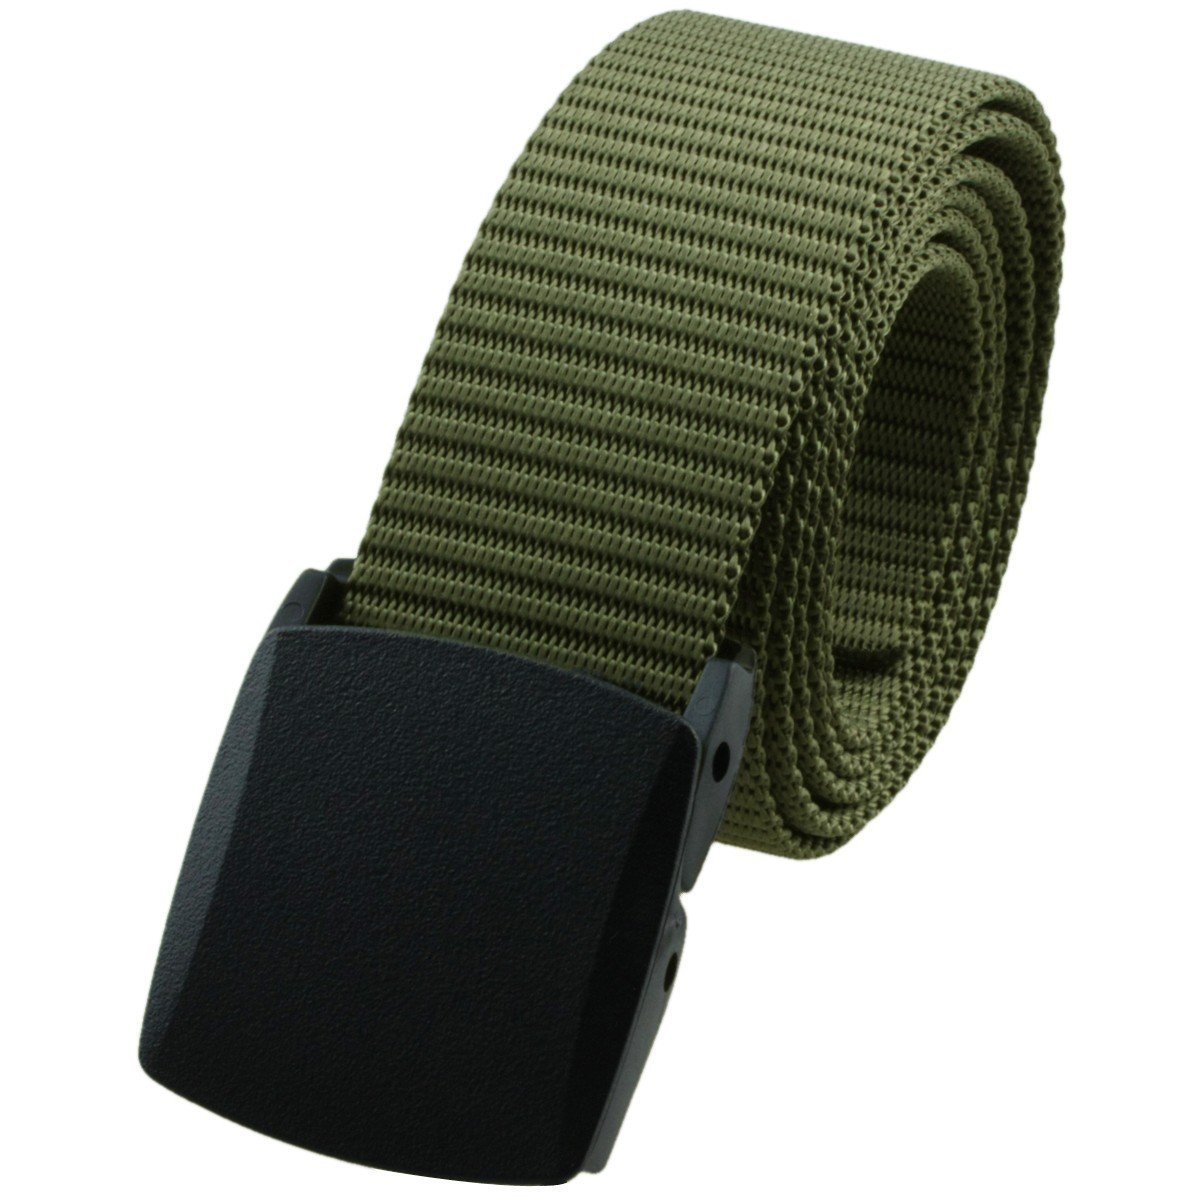 Best Tactical Belts For The Practical Prepper | Backdoor Survival